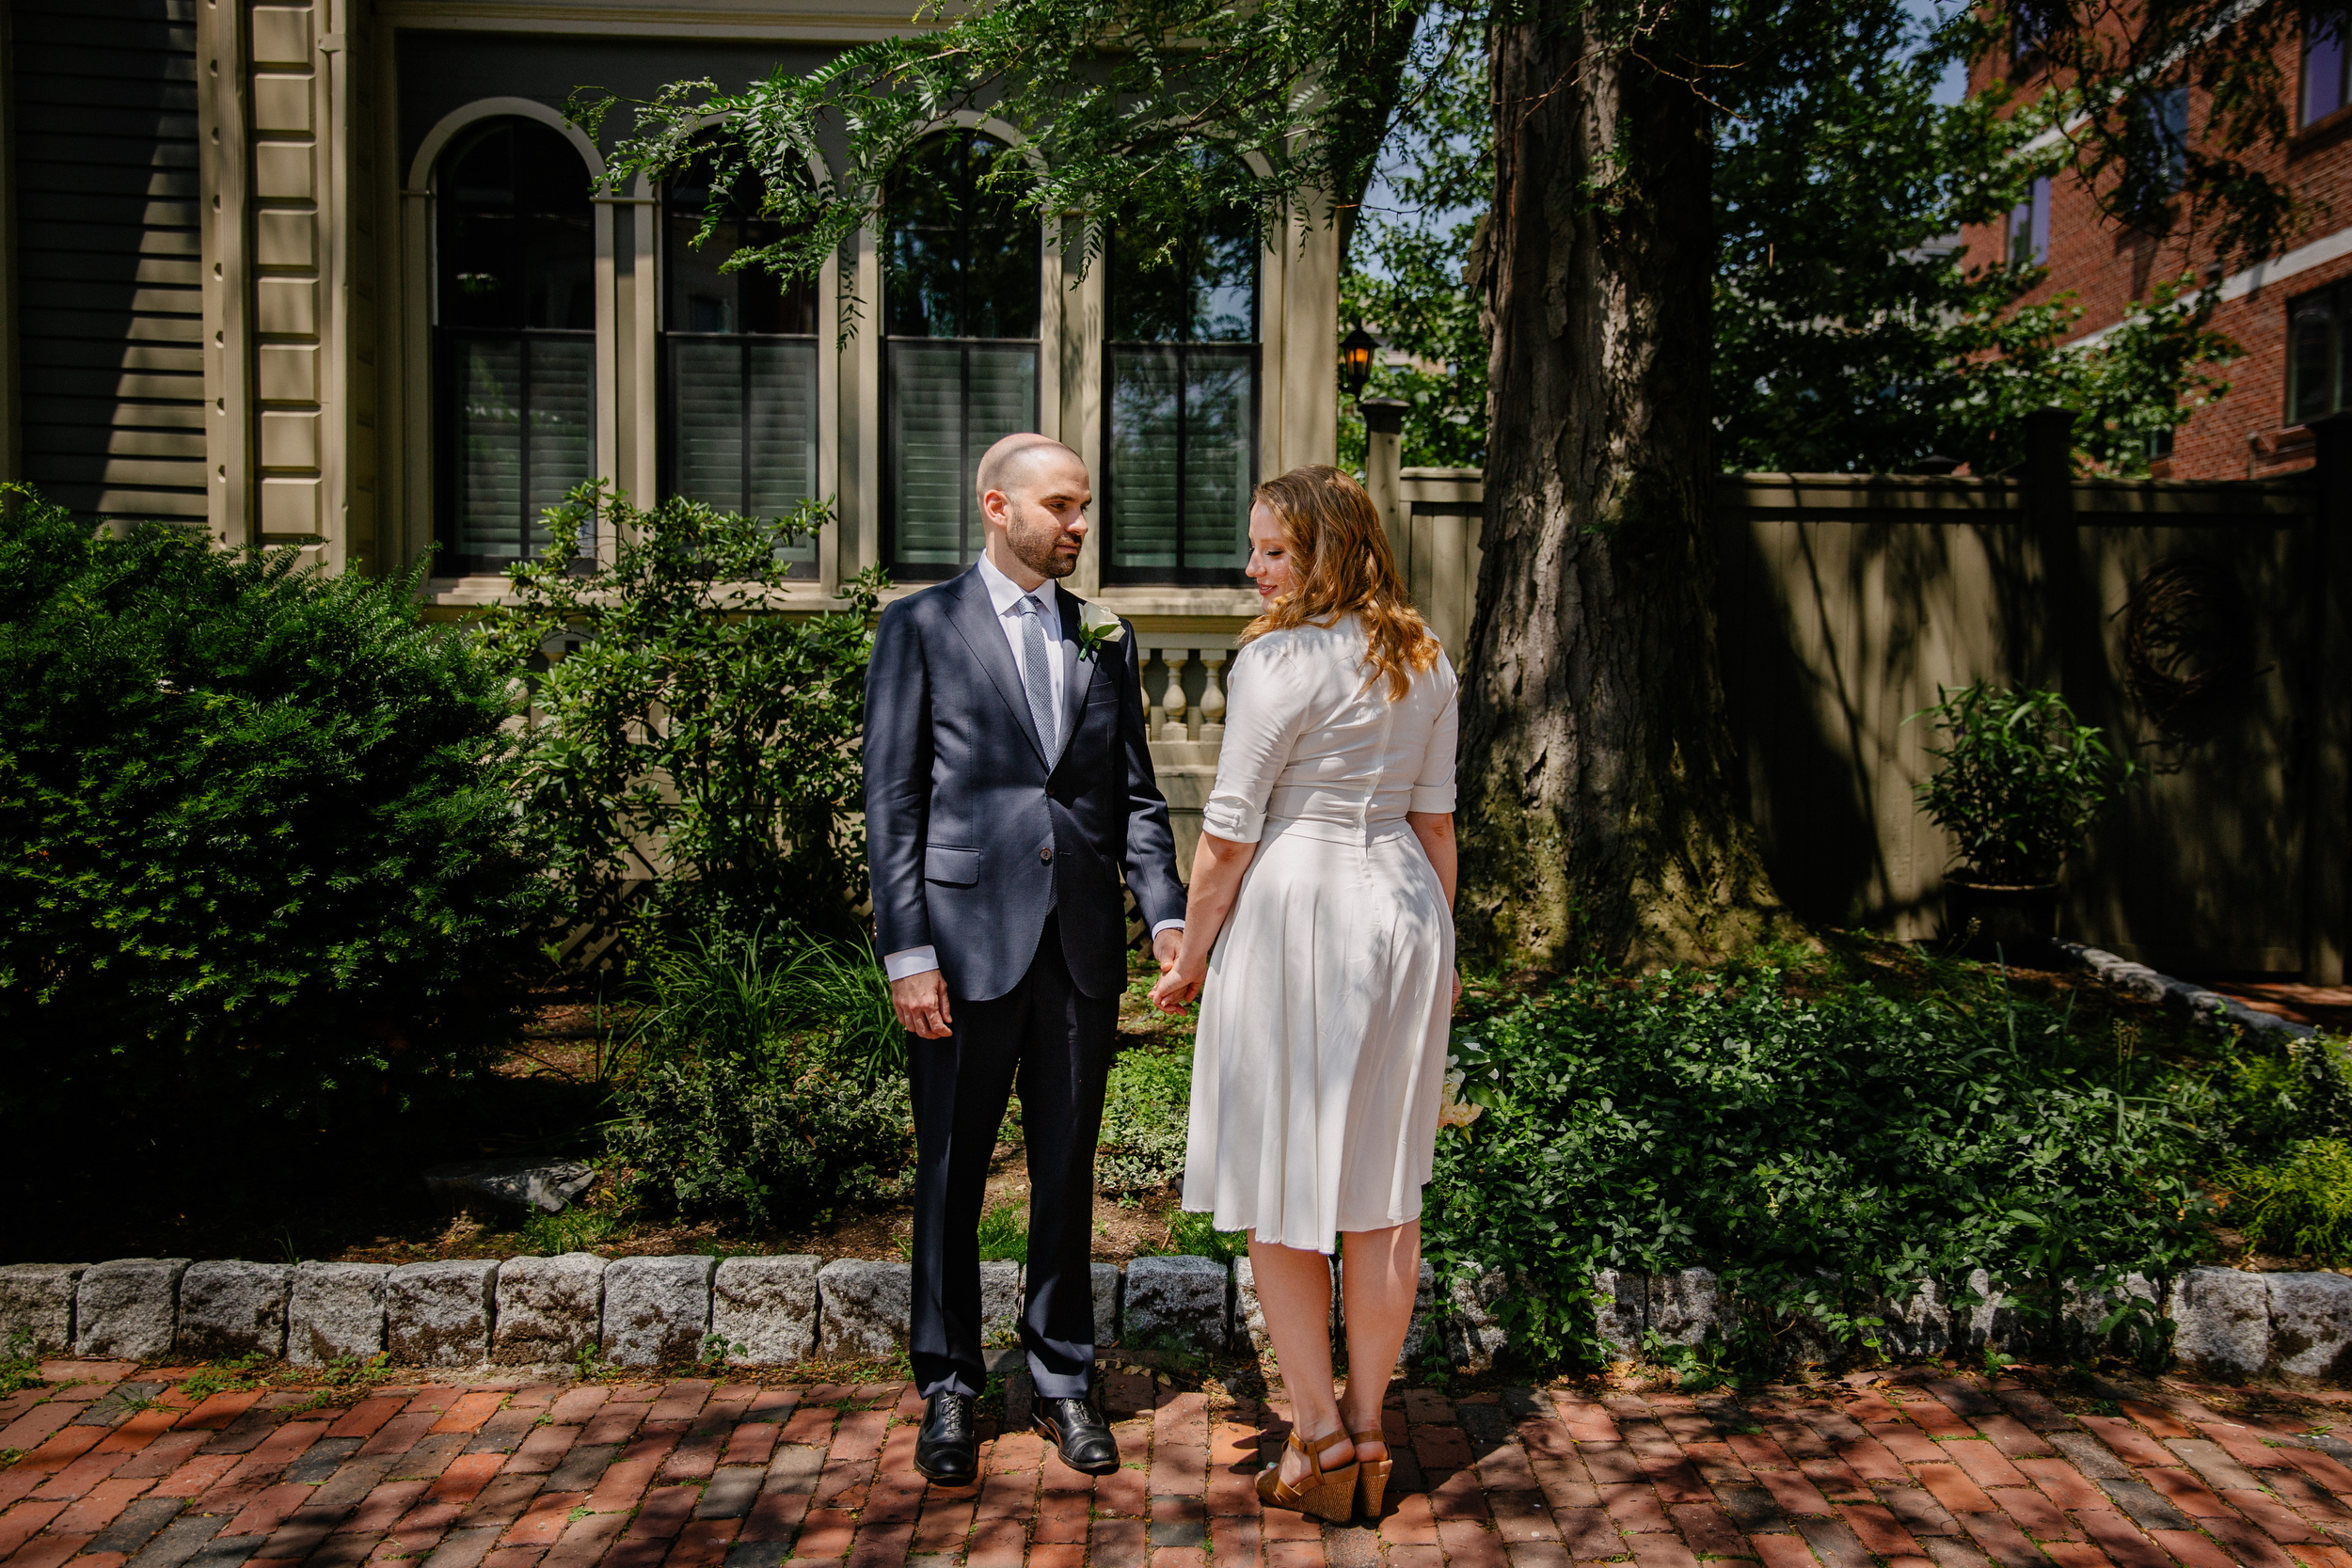 cambridge city hall elopement photos in the streets